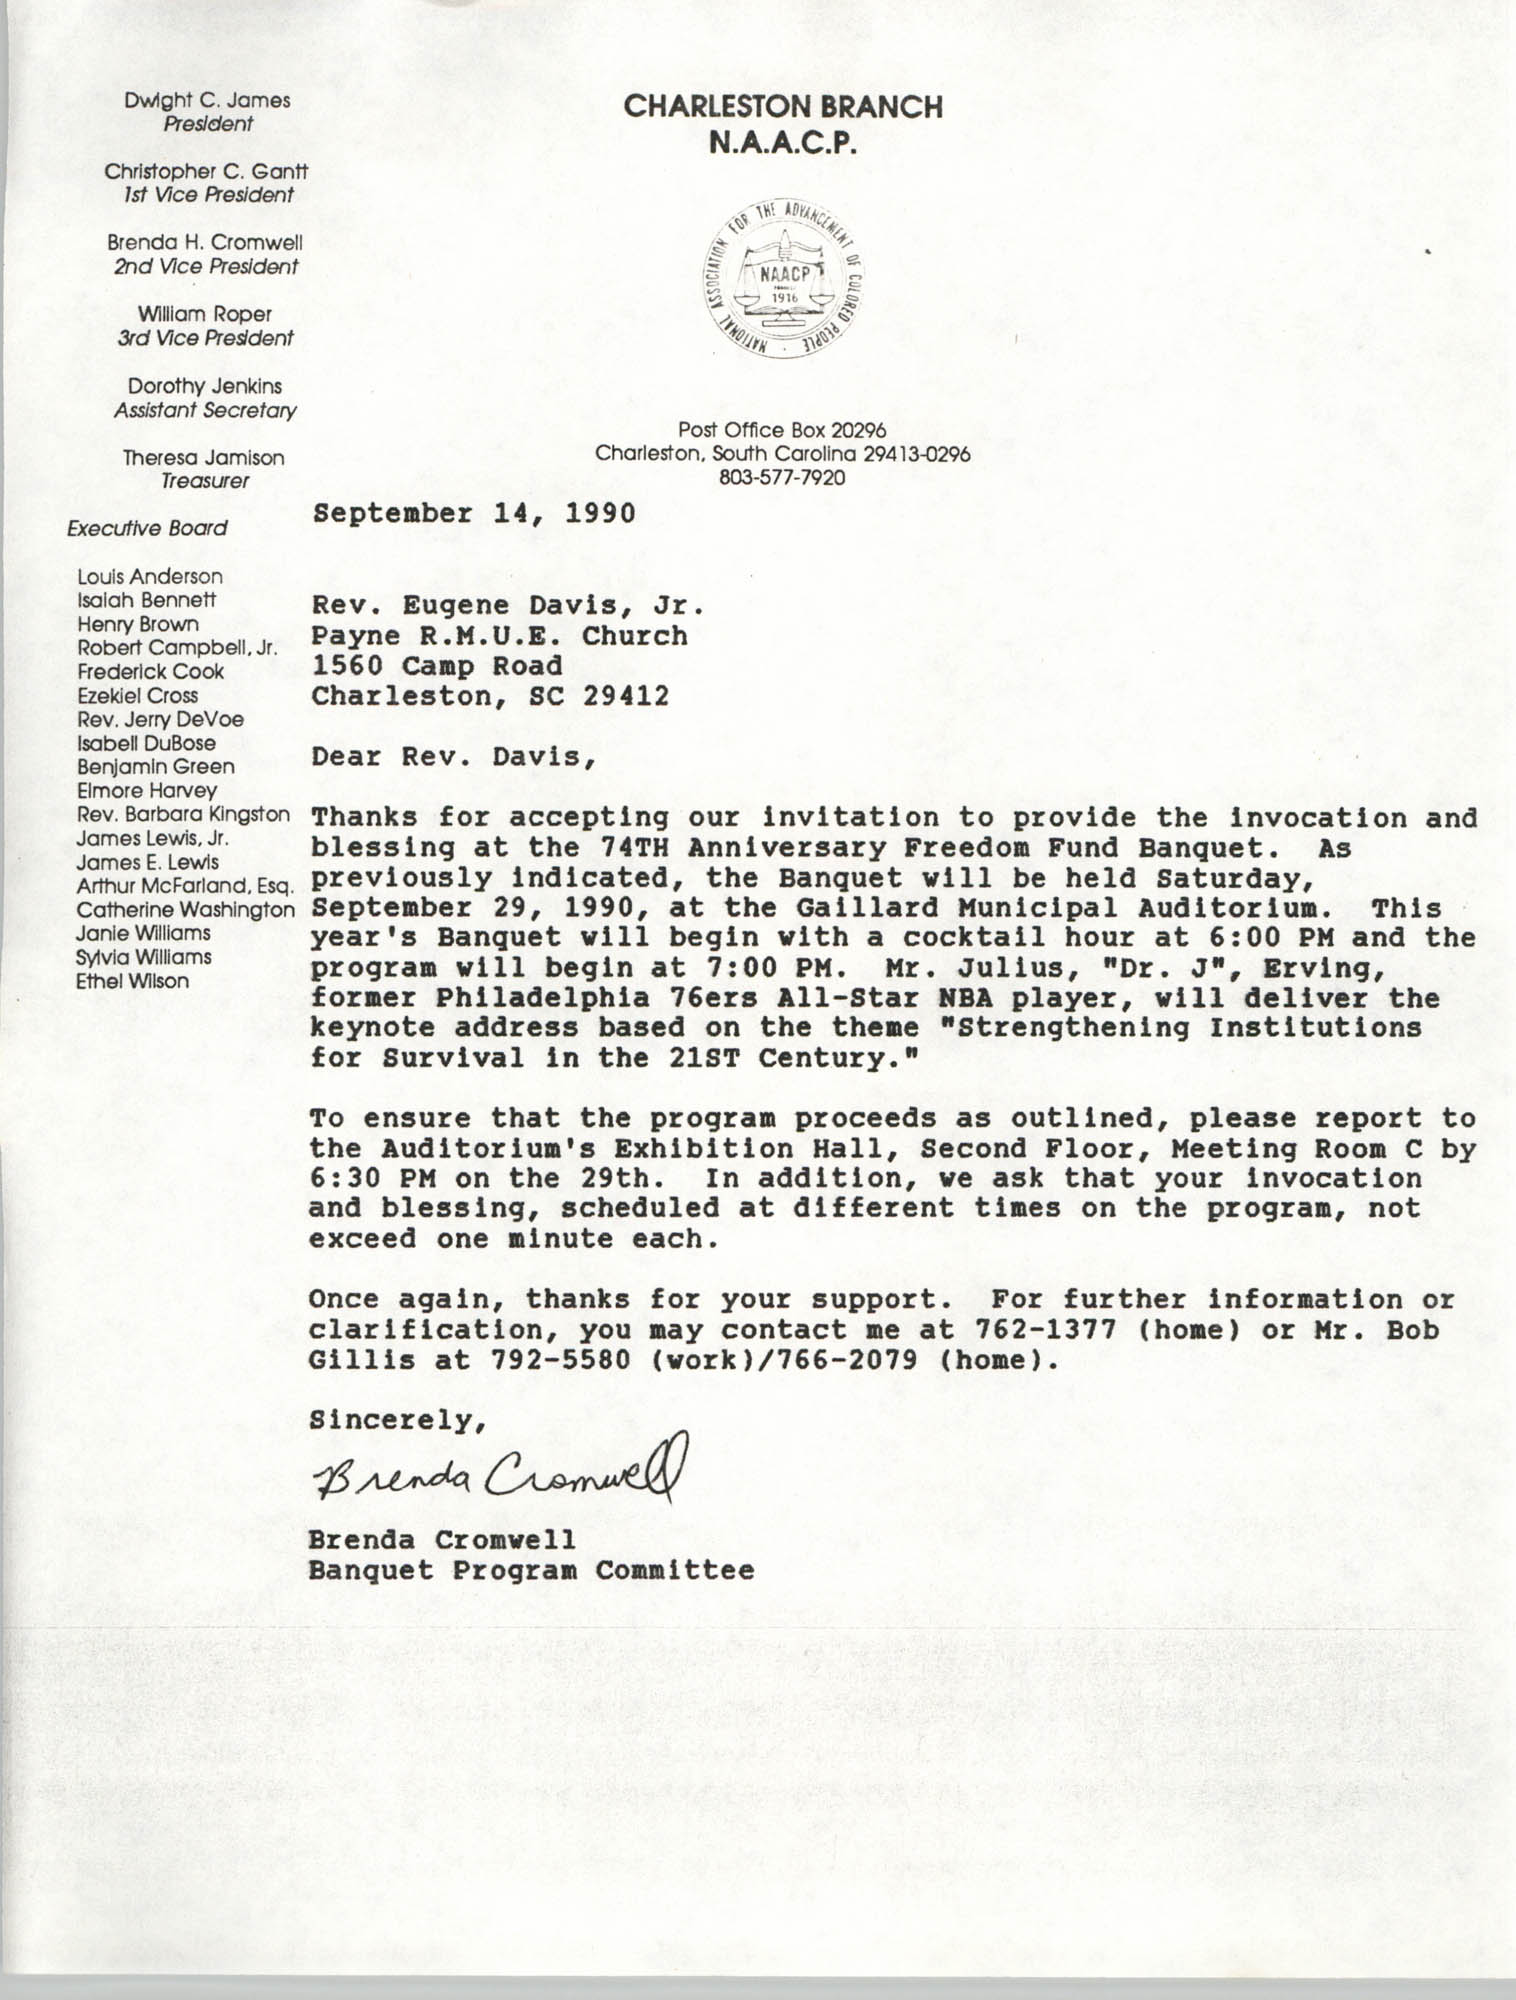 Letter from Brenda Cromwell to Rev. Eugene Davis, Jr., September 14, 1990